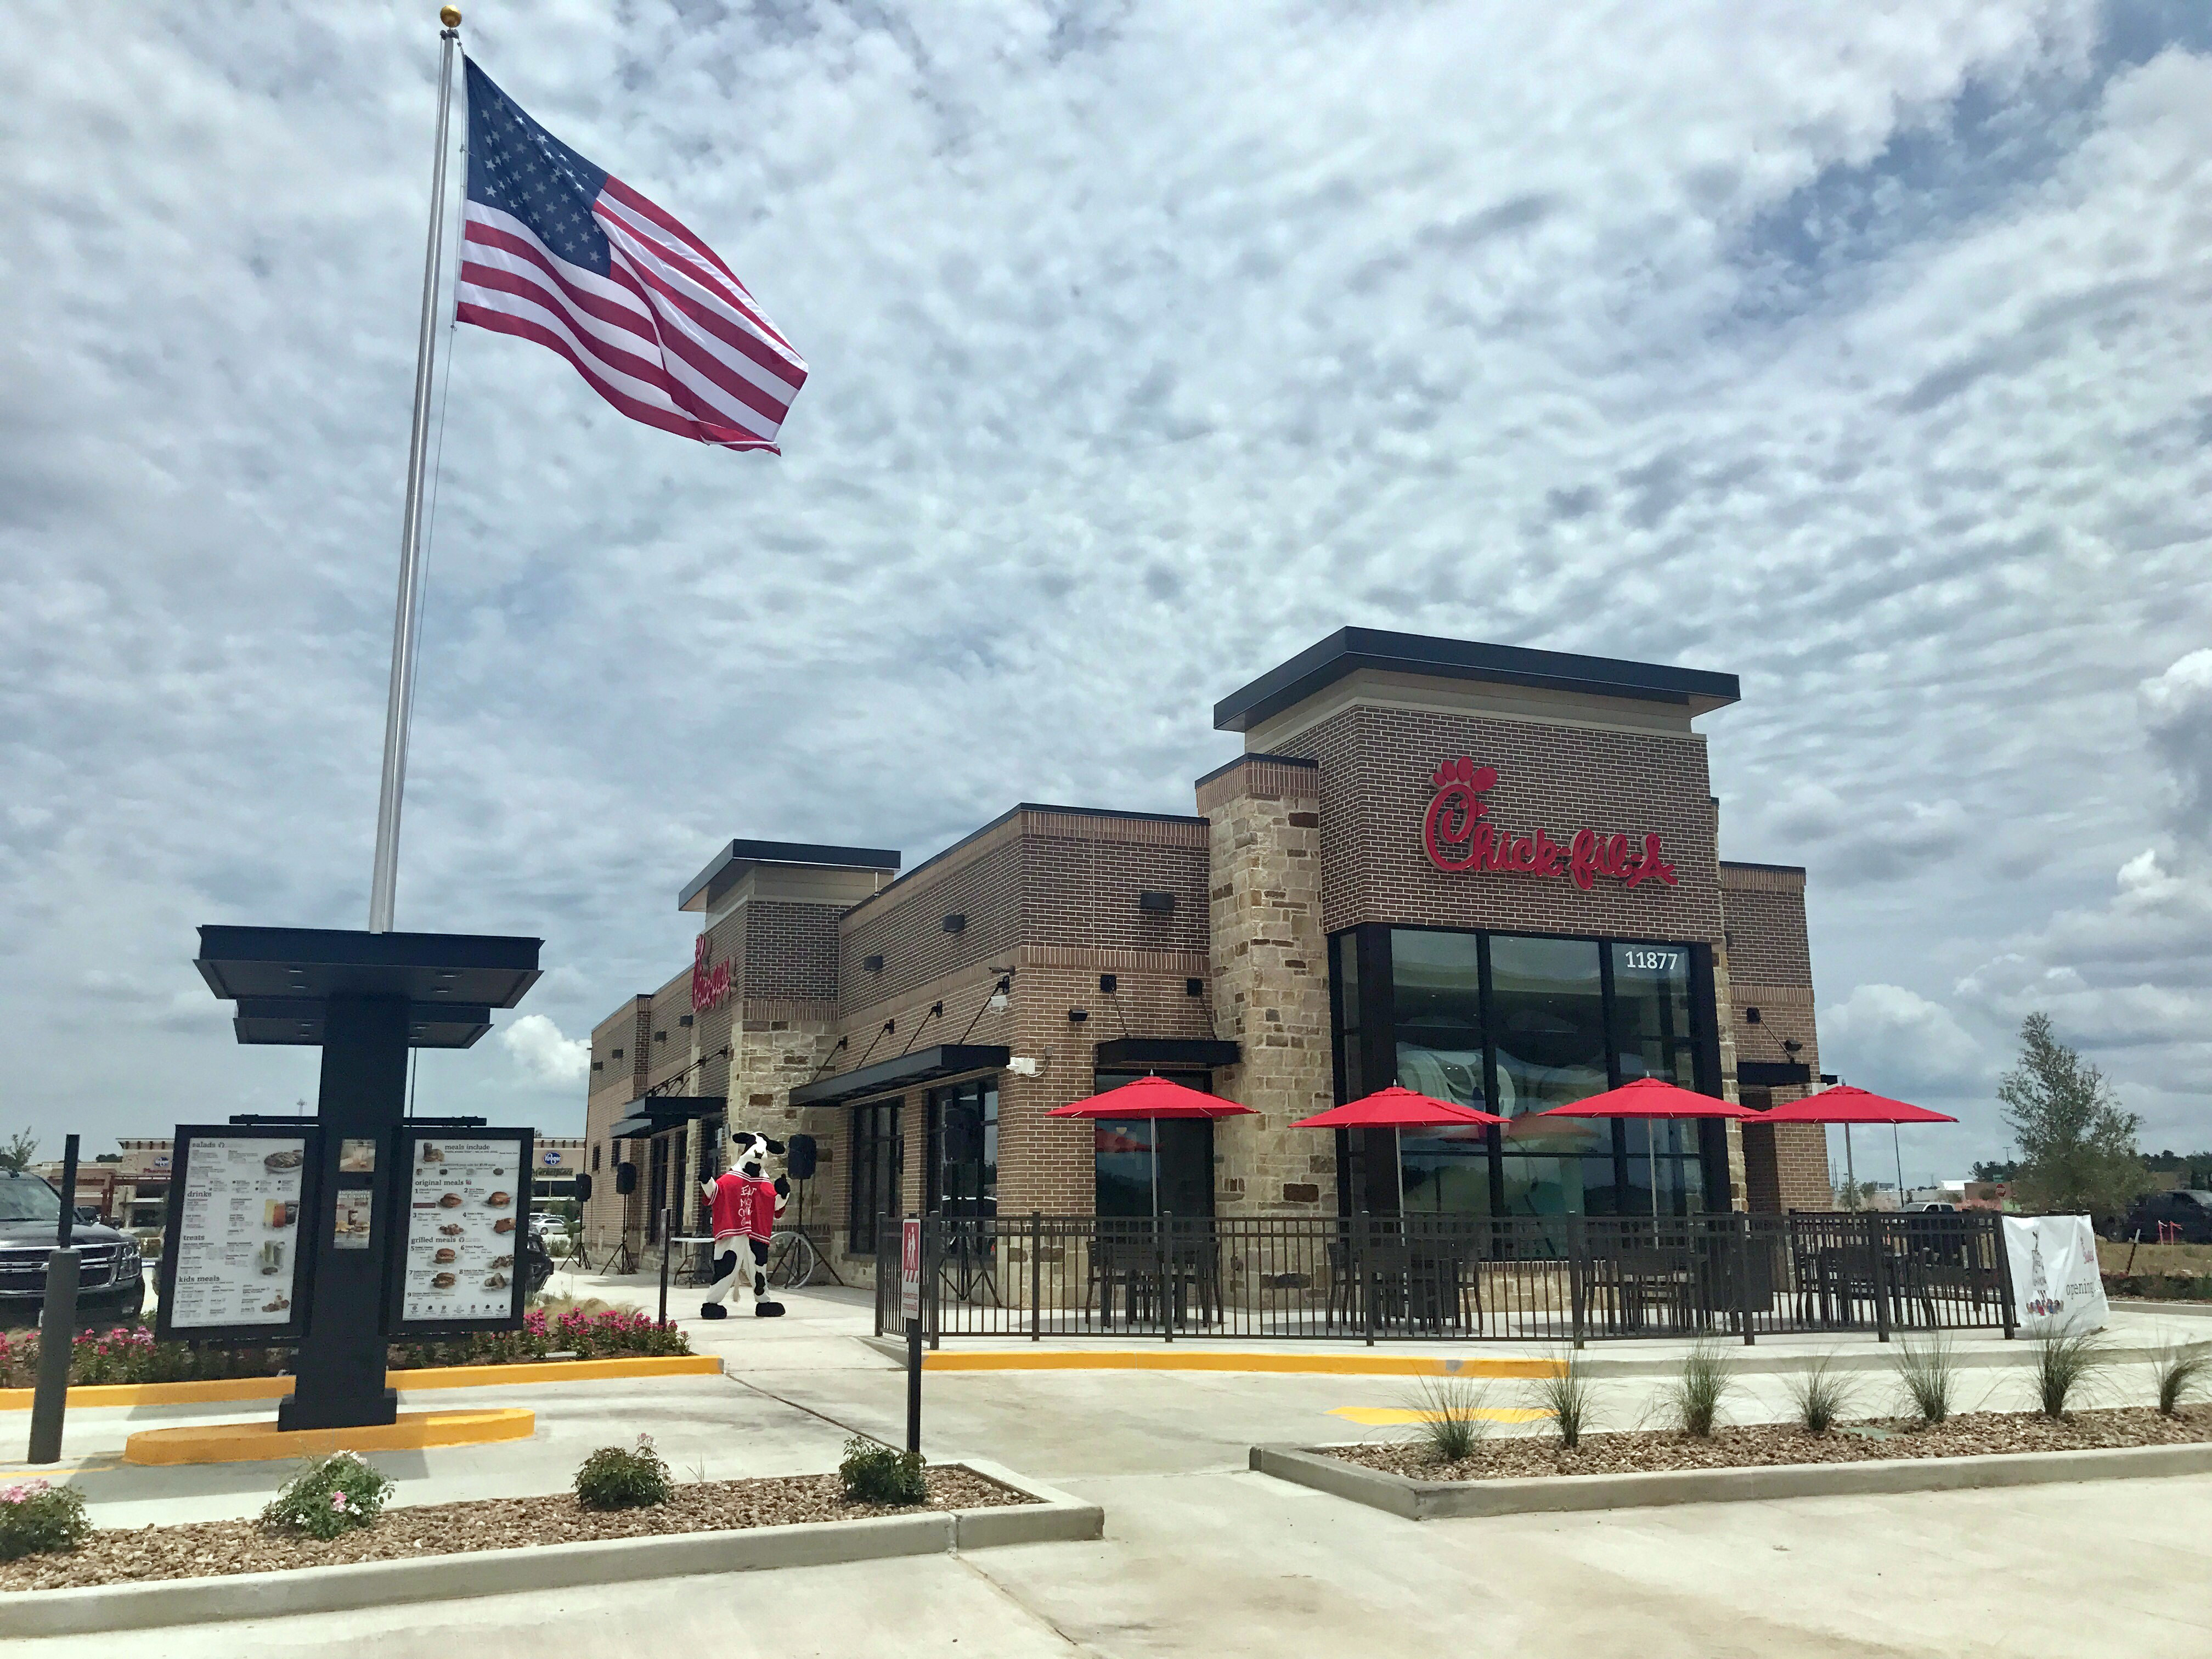 Chick-fil-a joins Valley Ranch Town Center